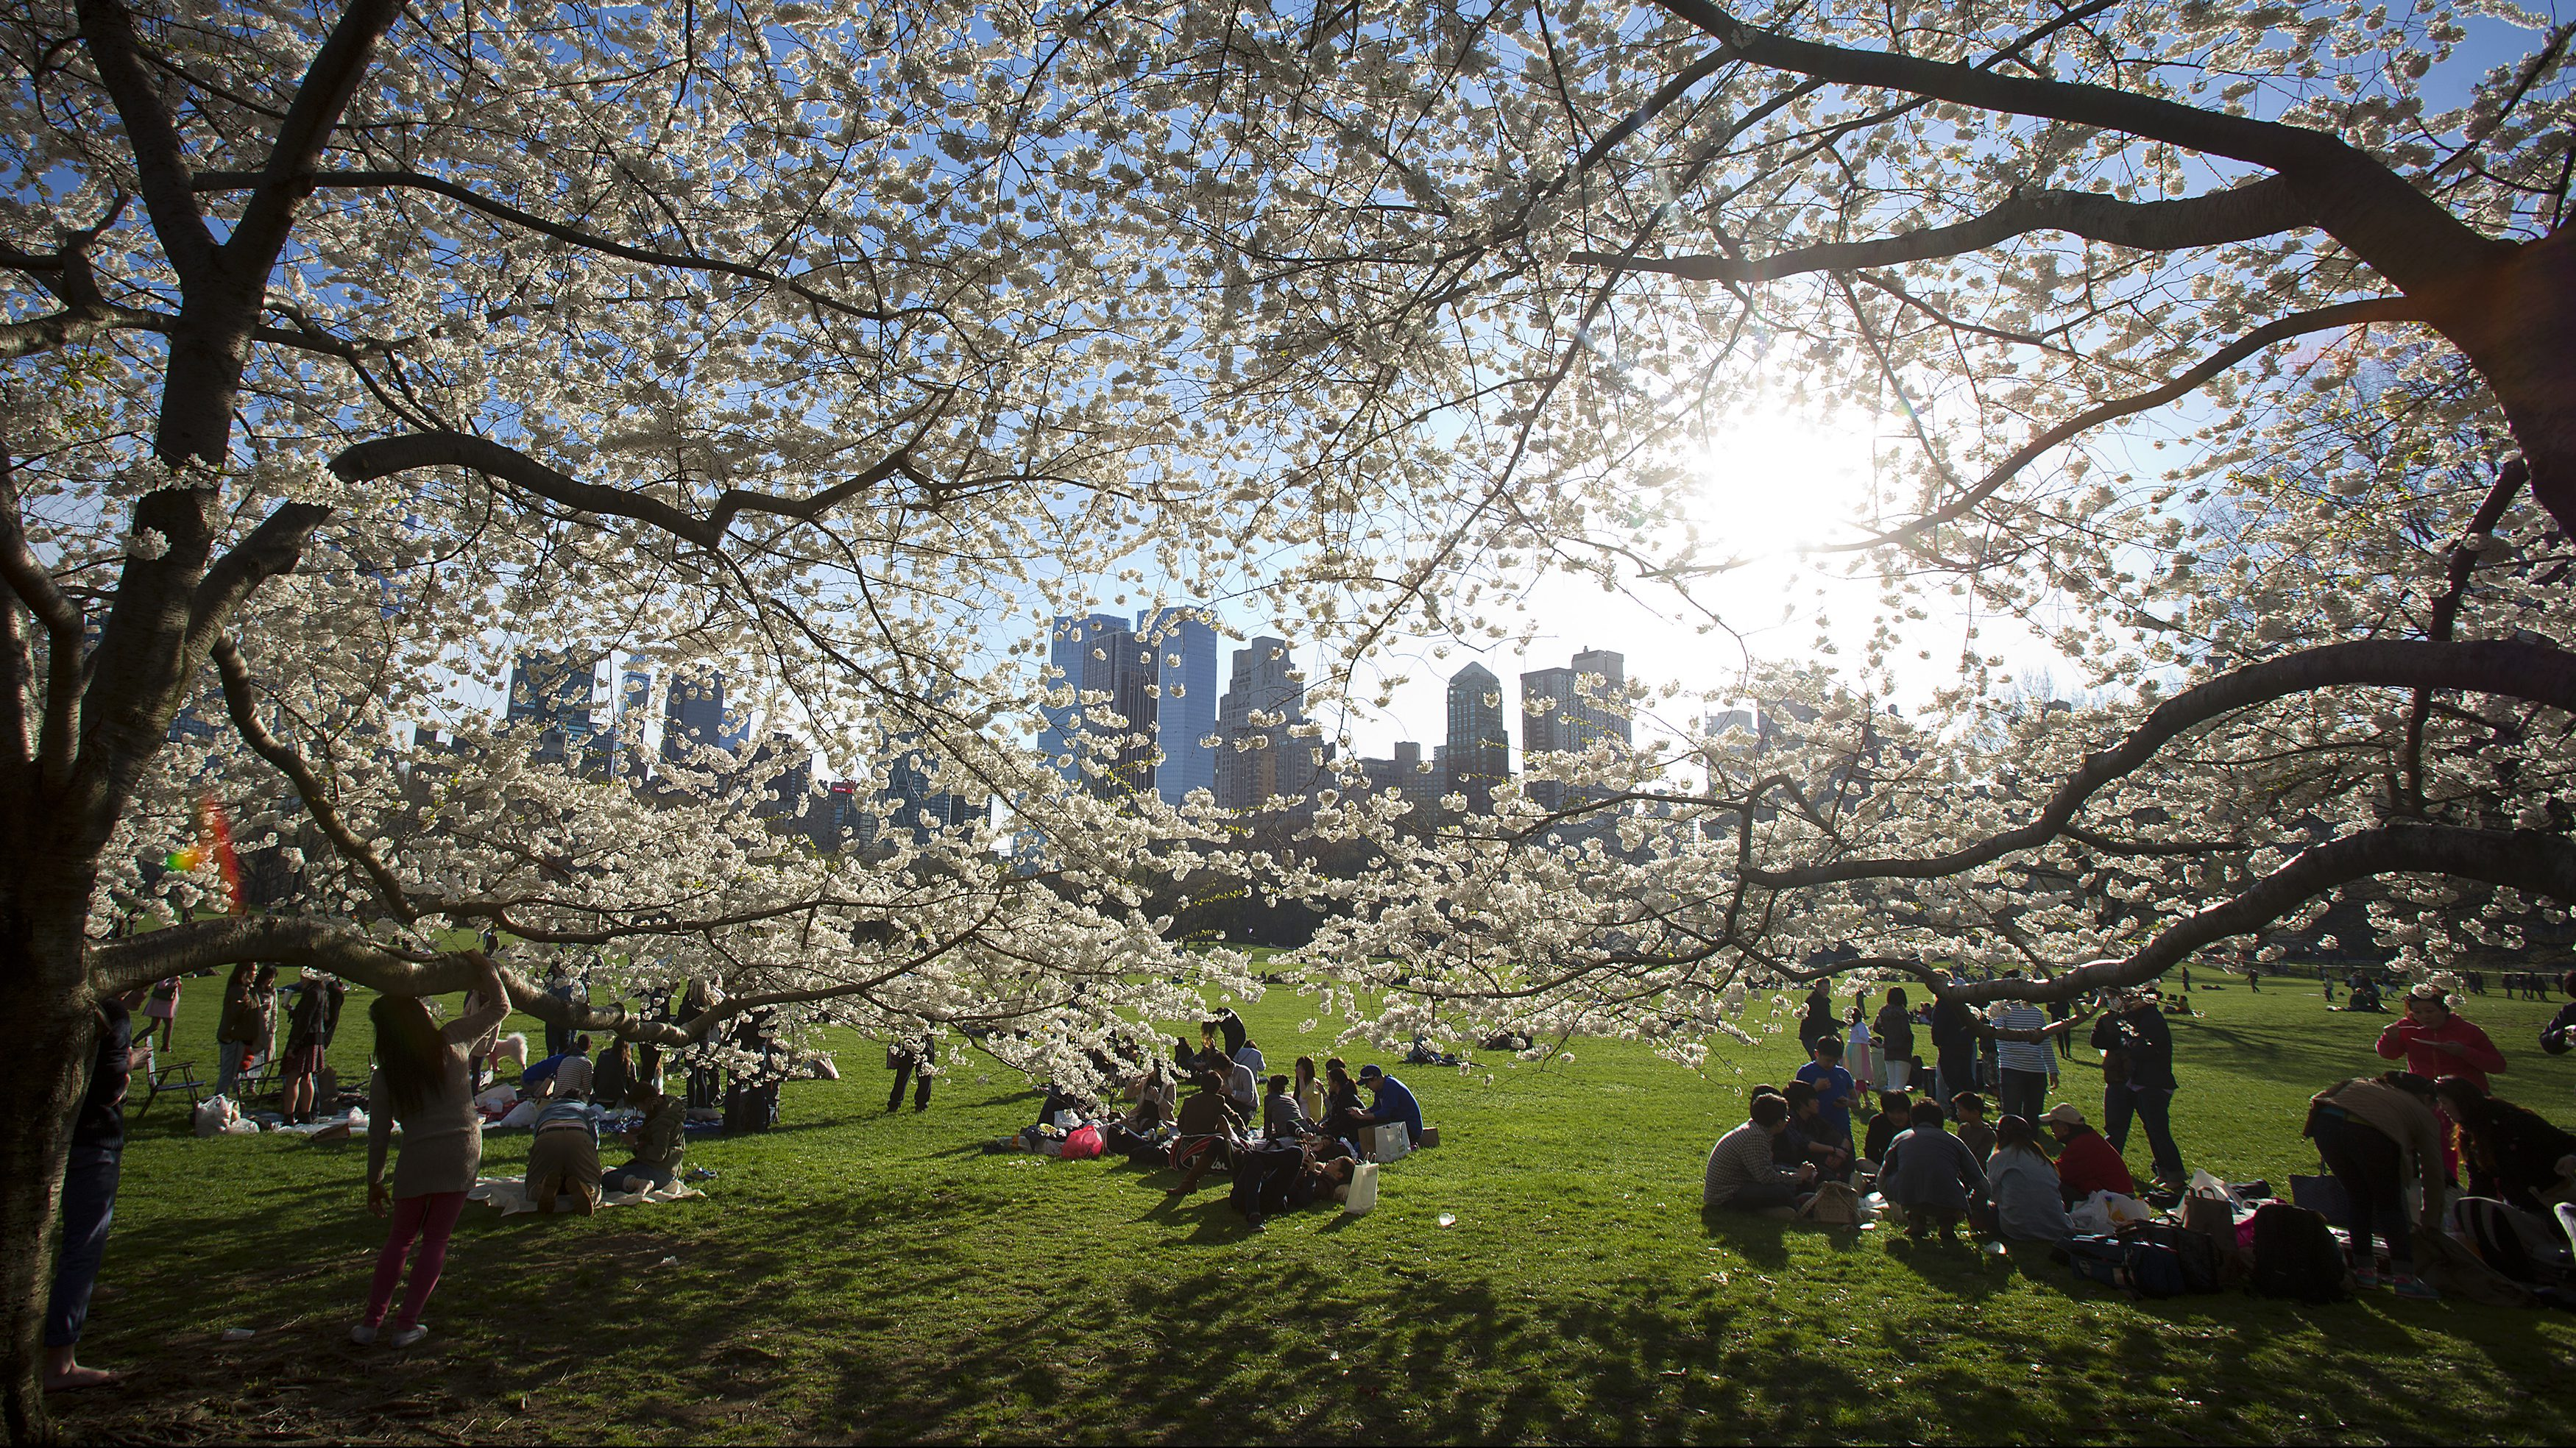 People gather near cherry trees in full blossom in Central Park in New York April 20, 2014. REUTERS/Carlo Allegri (UNITED STATES - Tags: SOCIETY ENVIRONMENT) - RTR3M0Y4